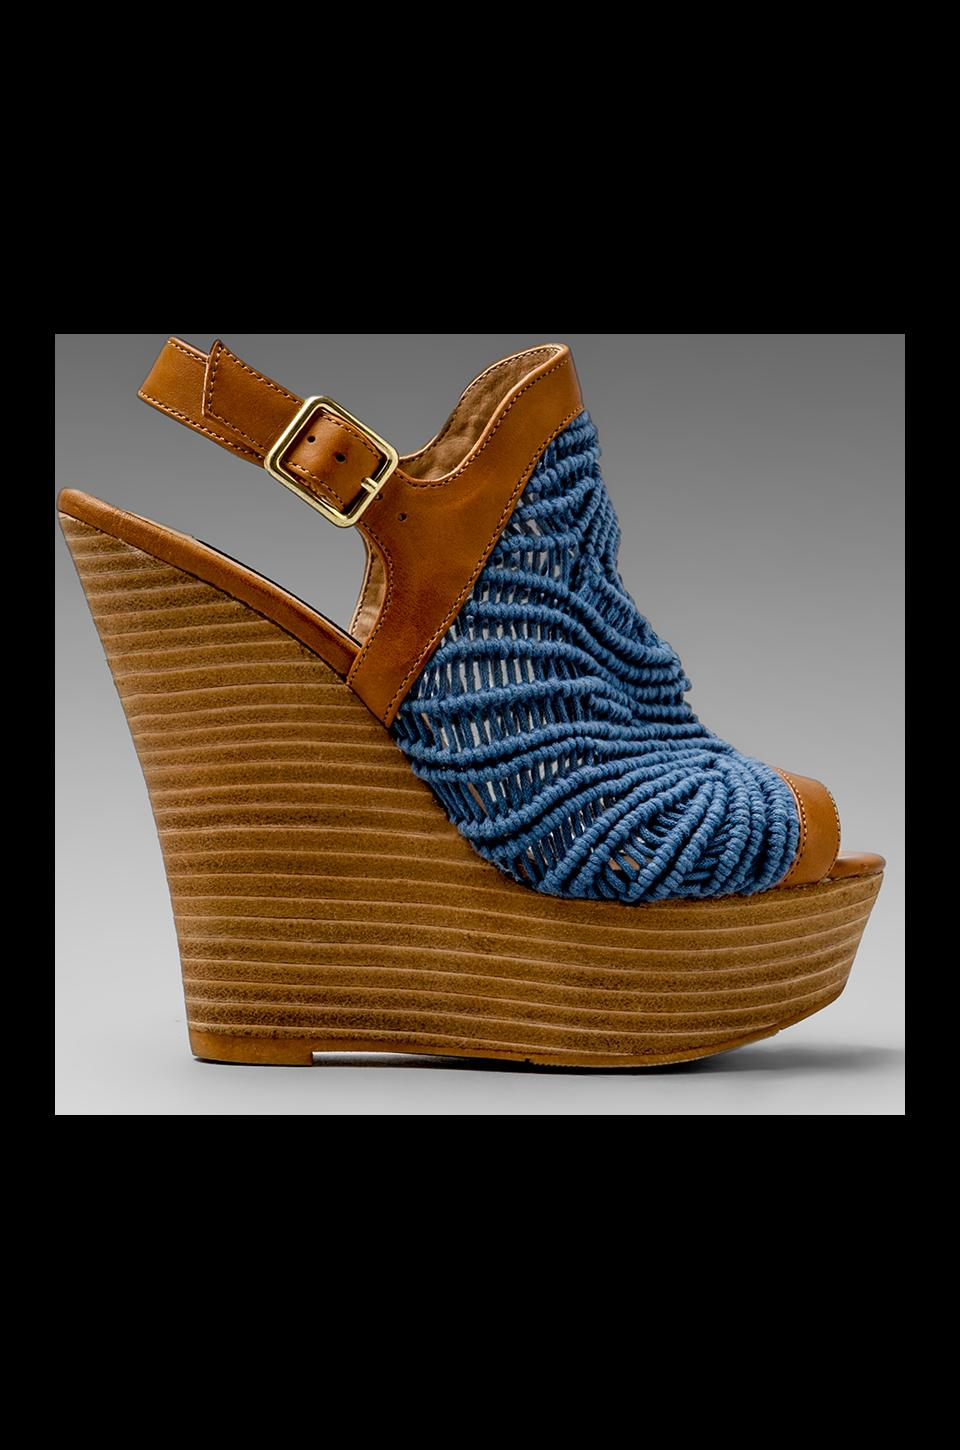 Steven Jacks Wedge Sandal in Blue